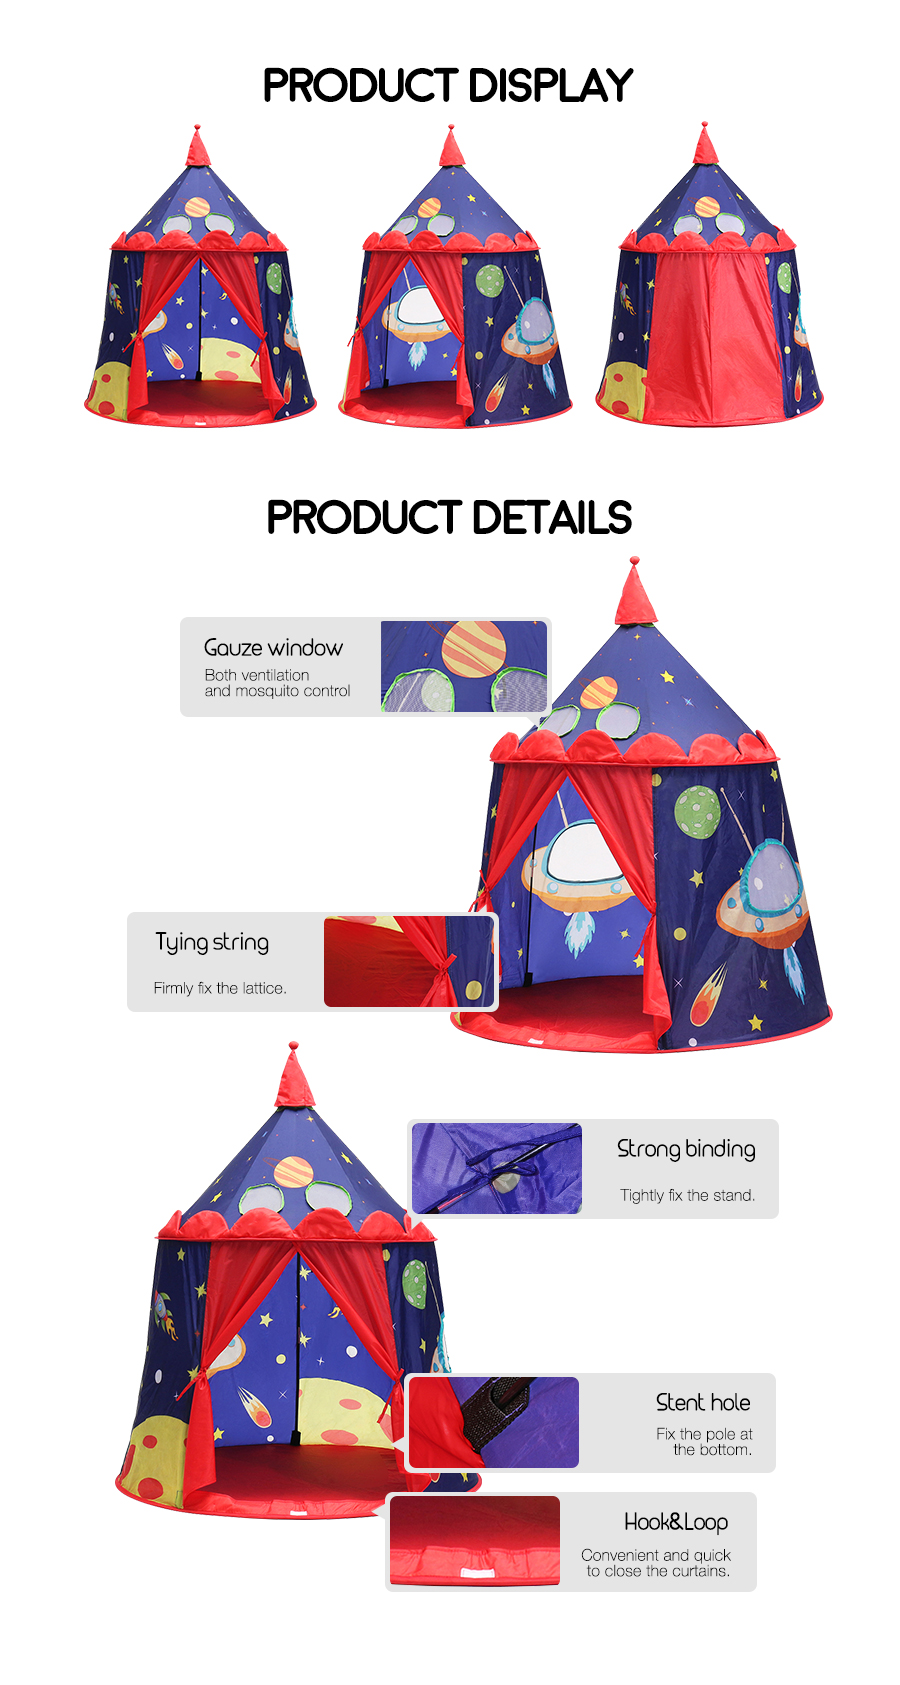 Xmund XD-ET1 Portable Play Tent Children Toy Outdoor Castle House Universe Theme